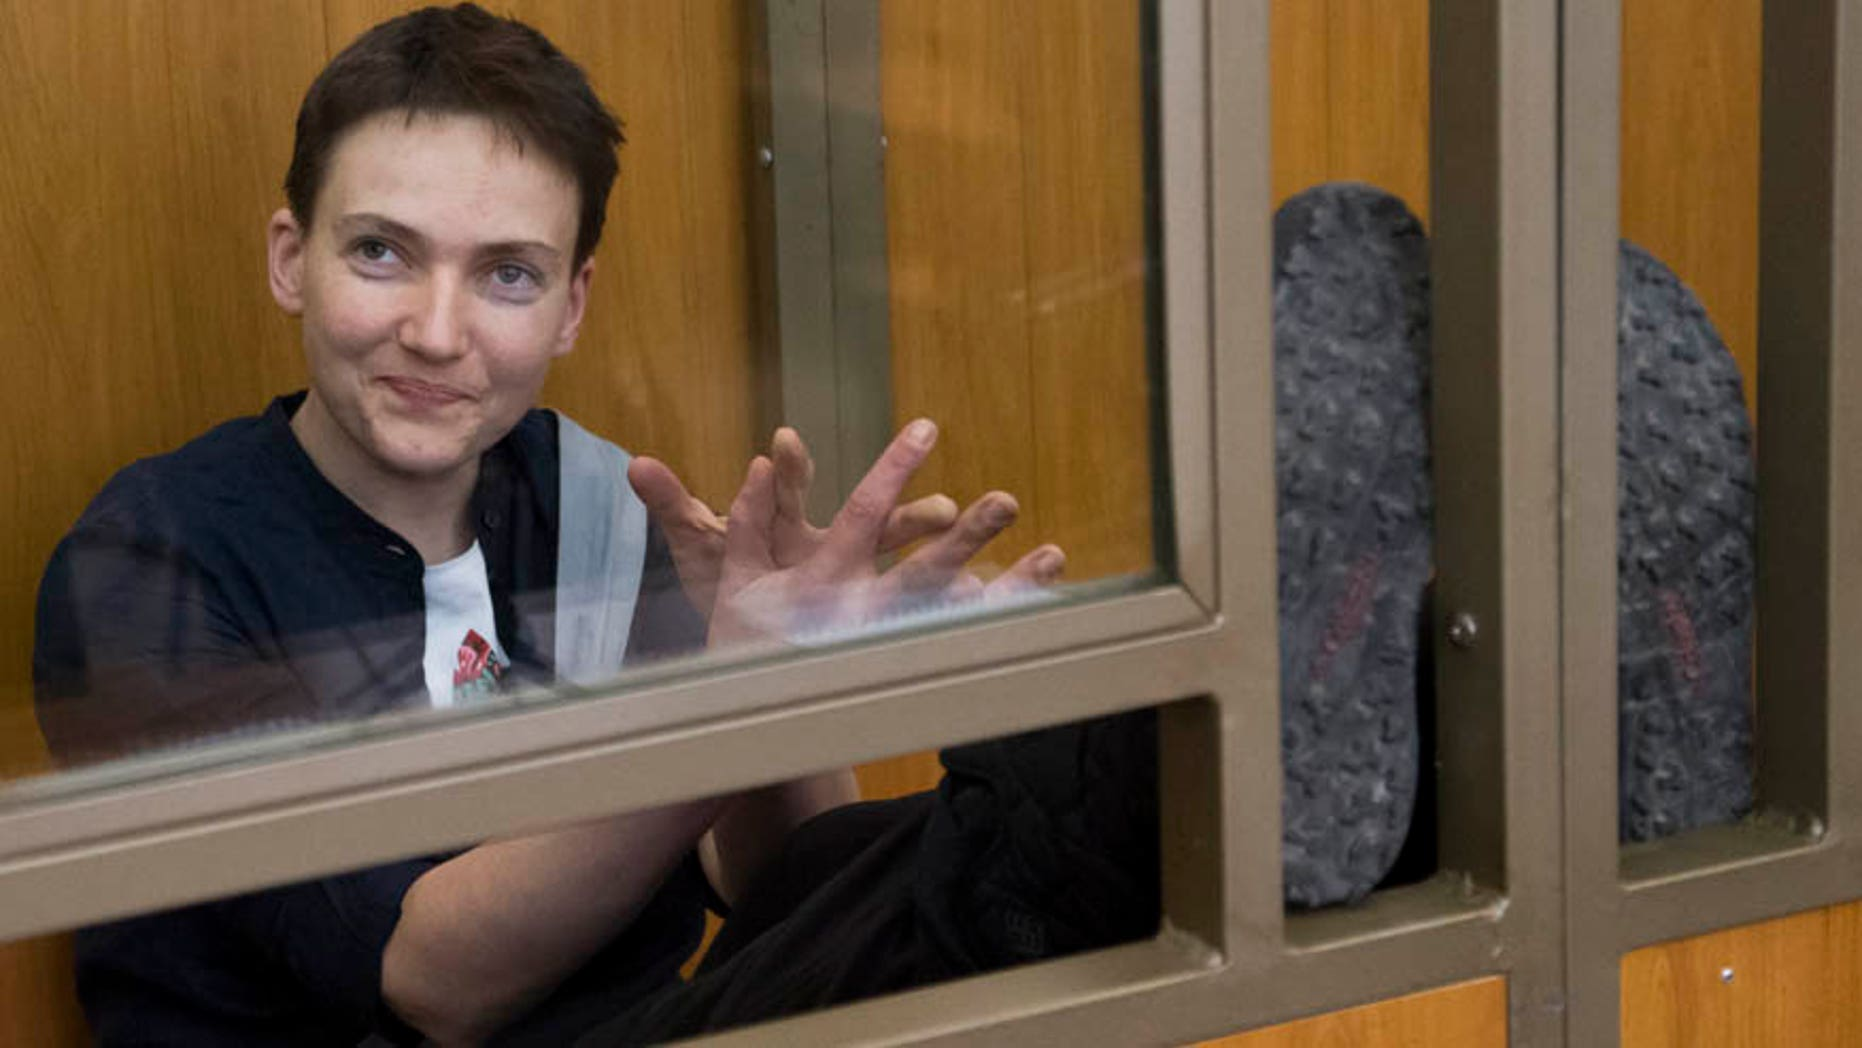 In this Tuesday, March 22, 2016 file photo Ukrainian pilot Nadezhda Savchenko looks out from a glass cage inside court, in the town of Donetsk, Rostov-on-Don region, Russia